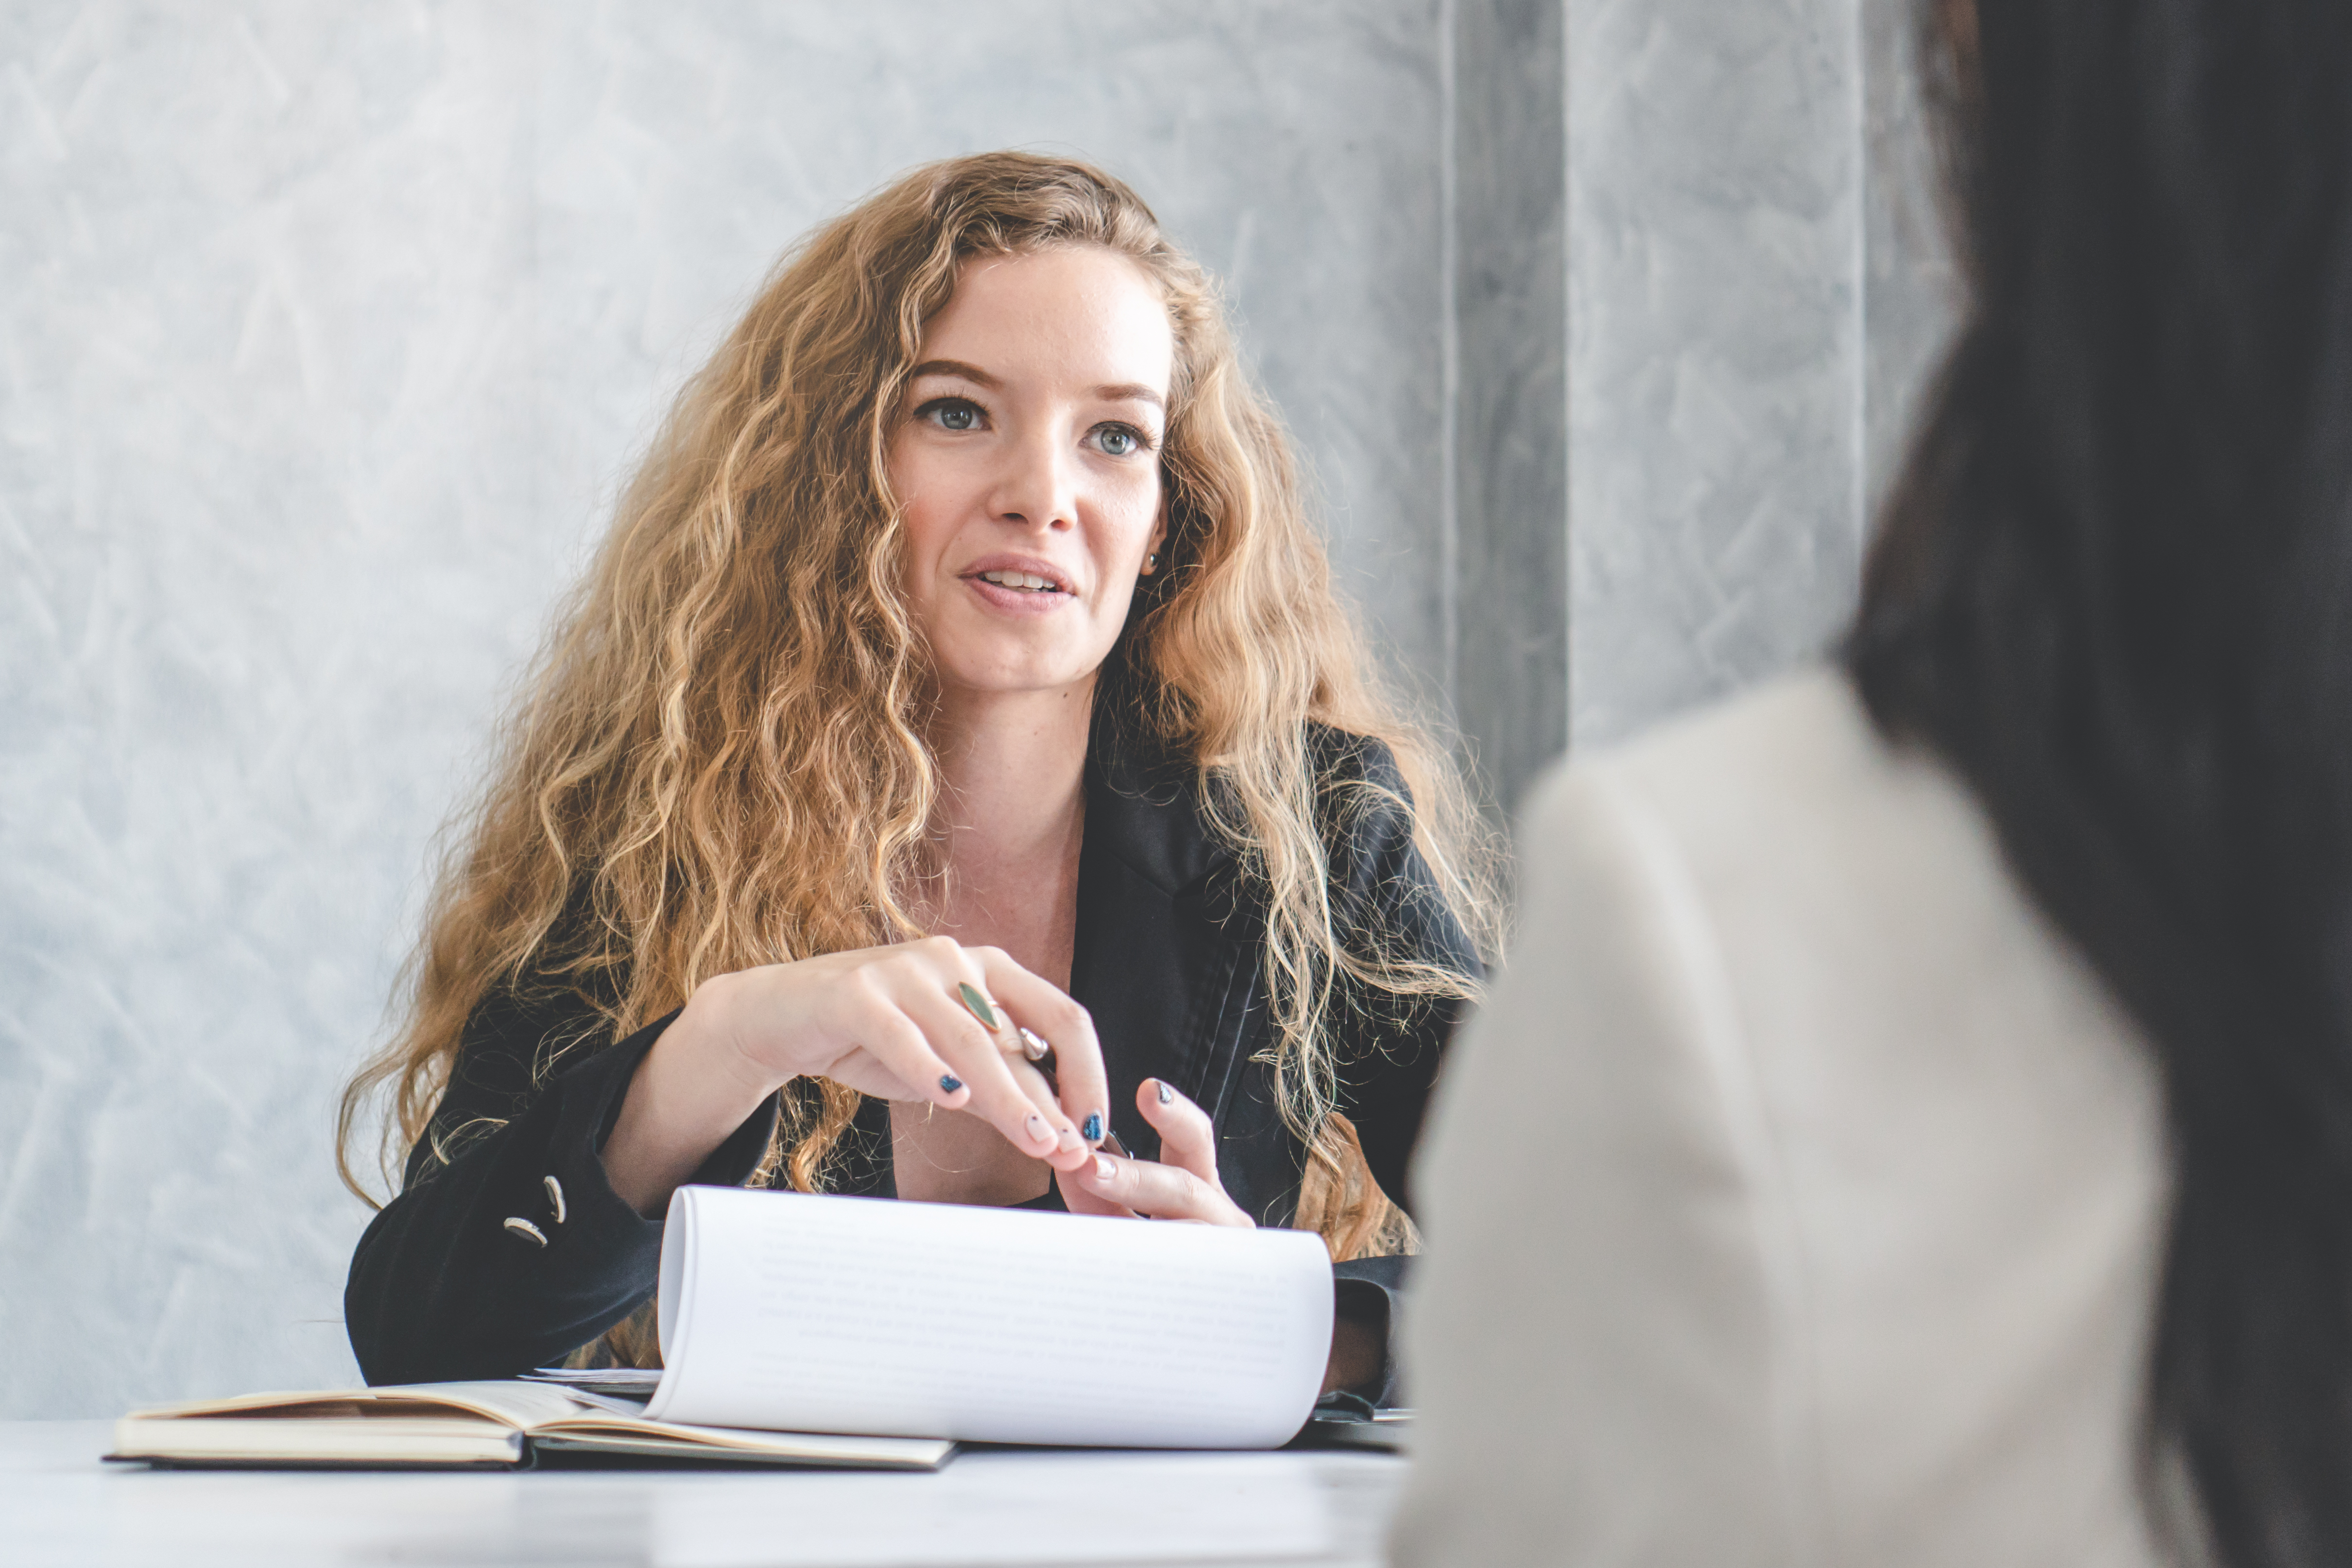 Friendly business woman interviewing new